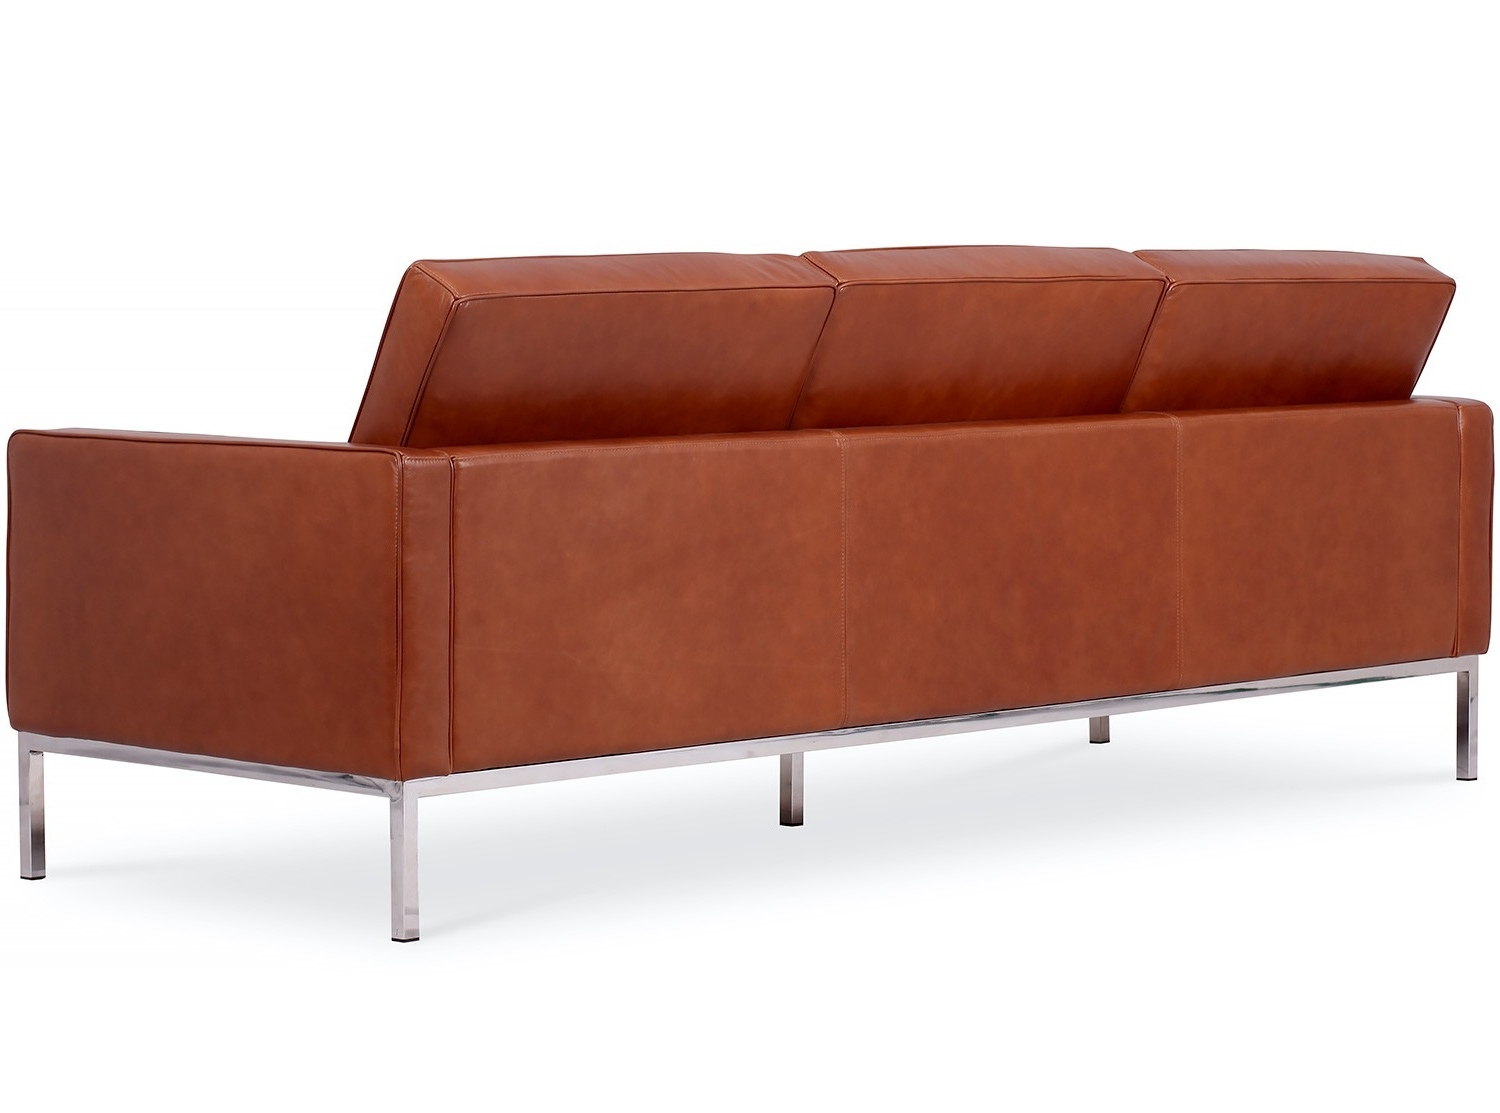 Fashionable Florence Knoll 3 Seater Sofas Within Florence Knoll Sofa 3 Seater Leather (Platinum Replica) (View 4 of 20)